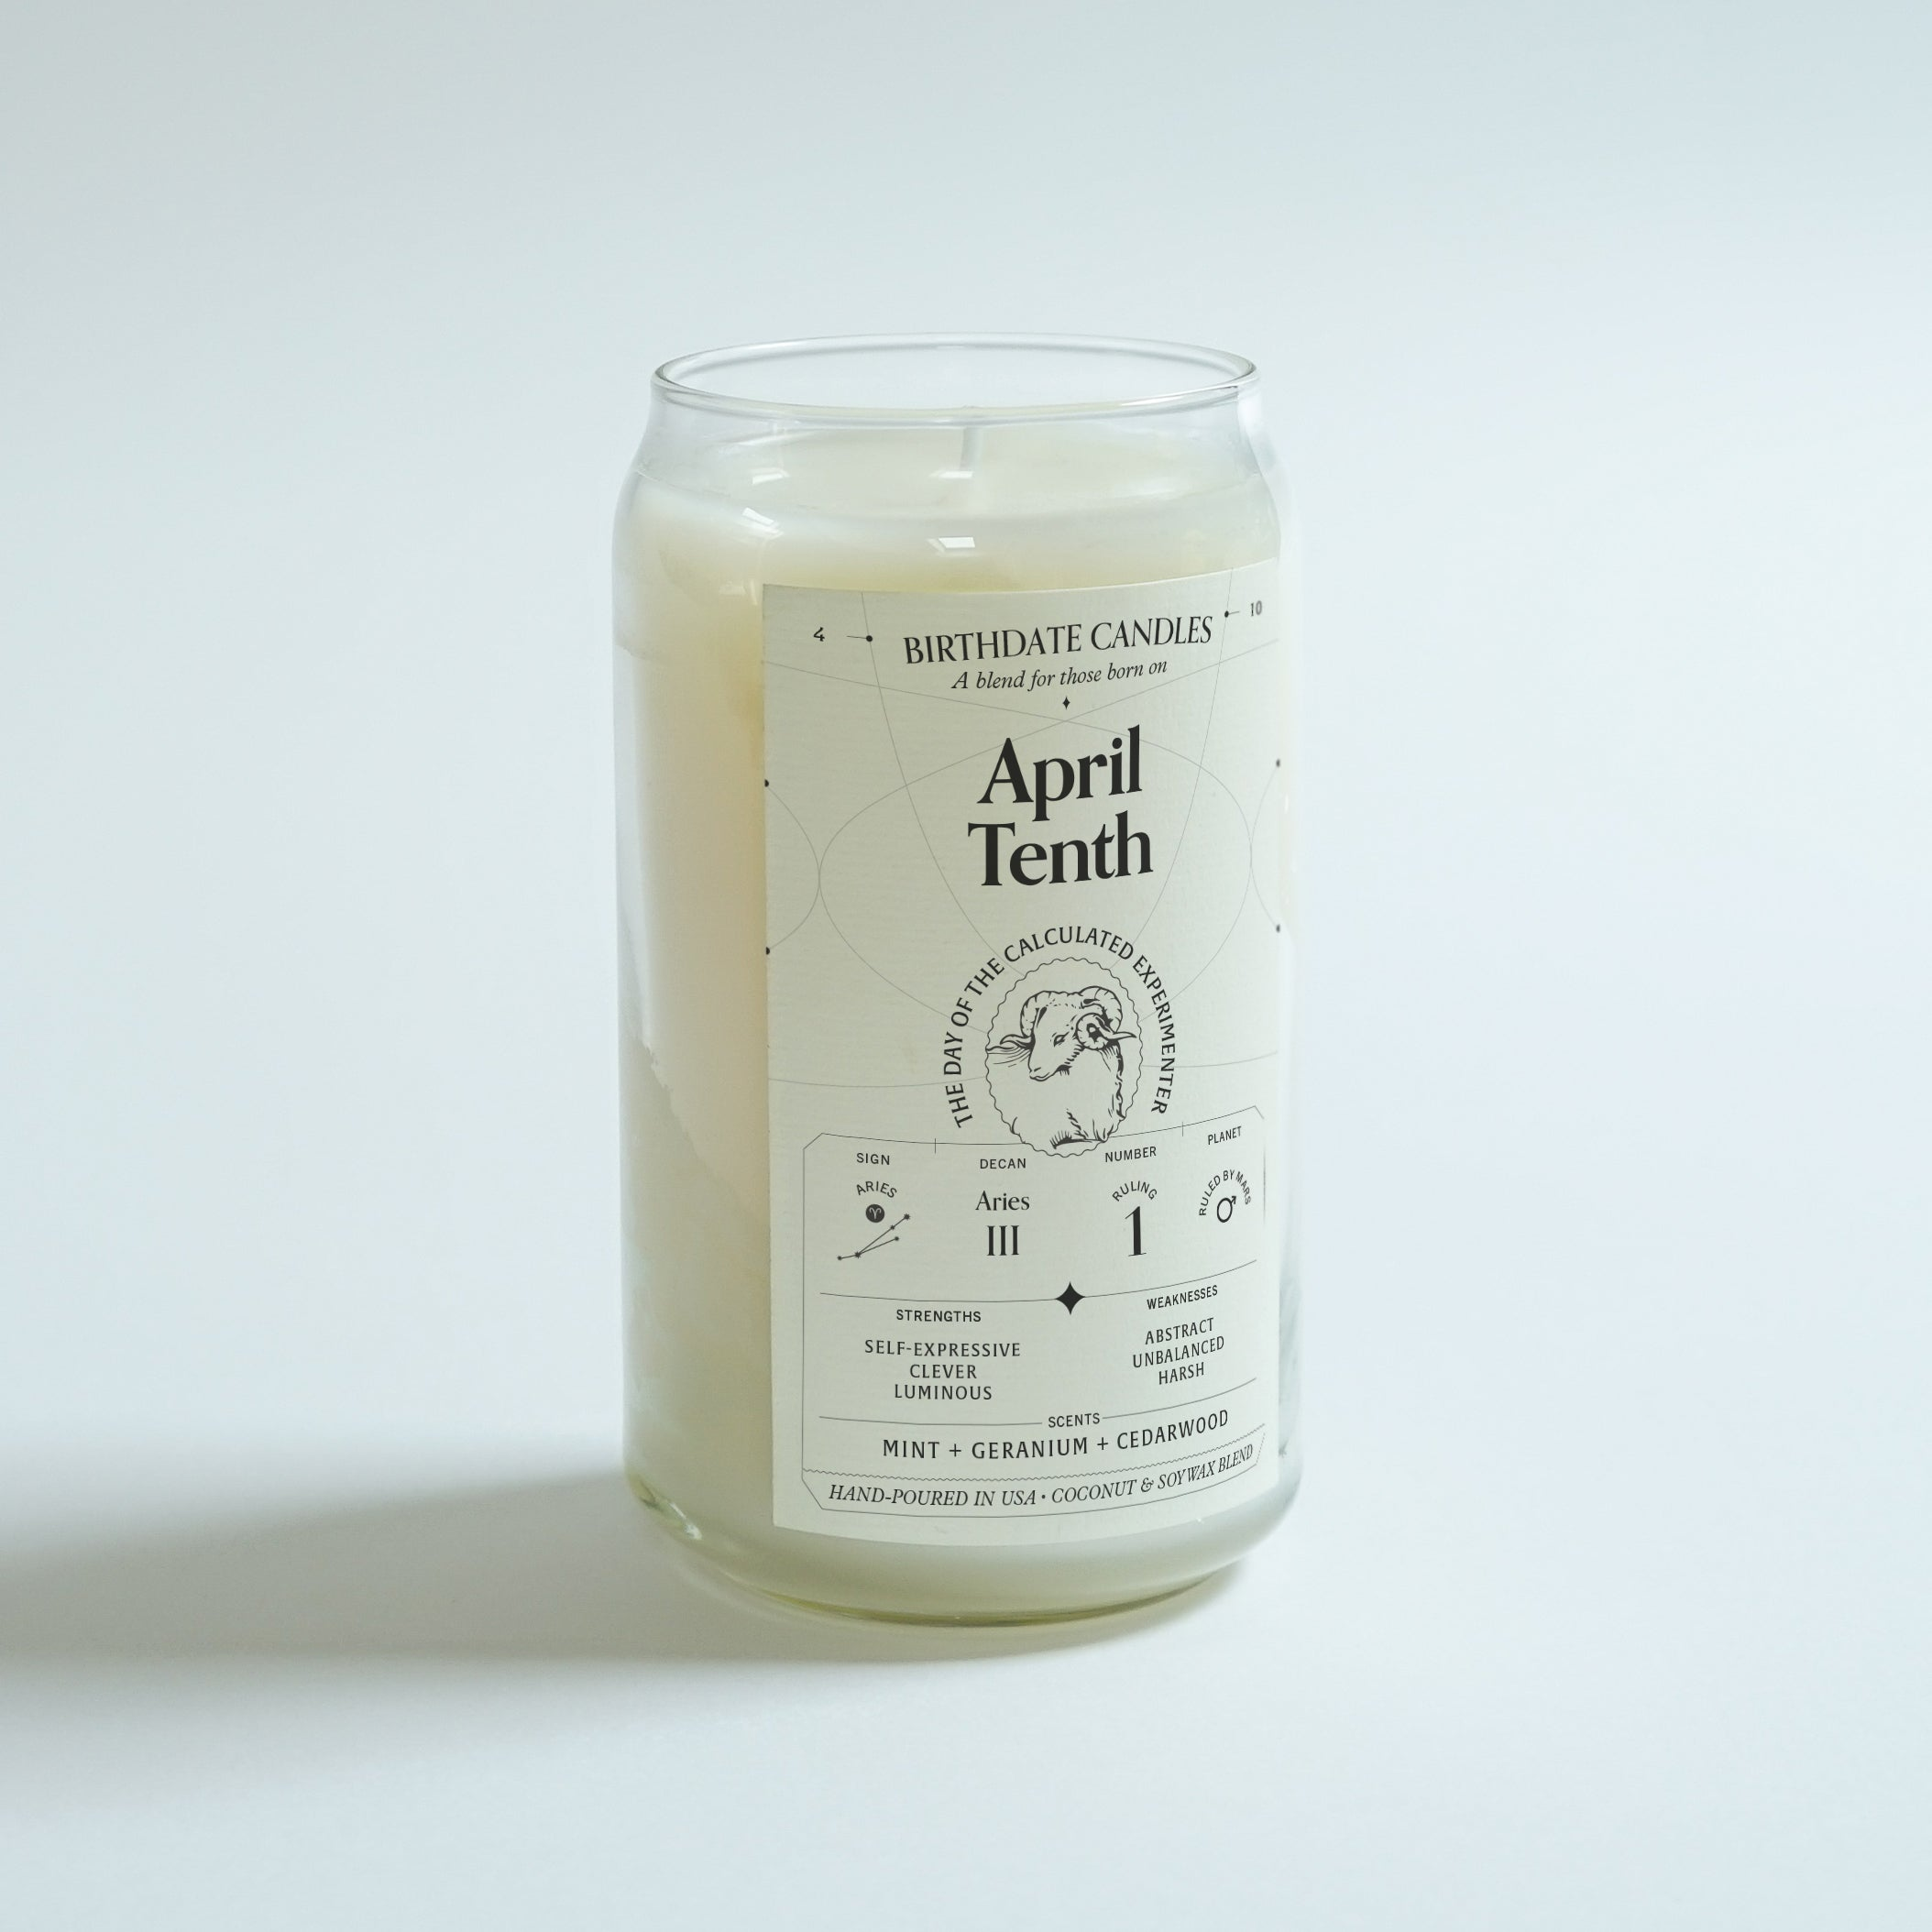 The April Tenth Candle